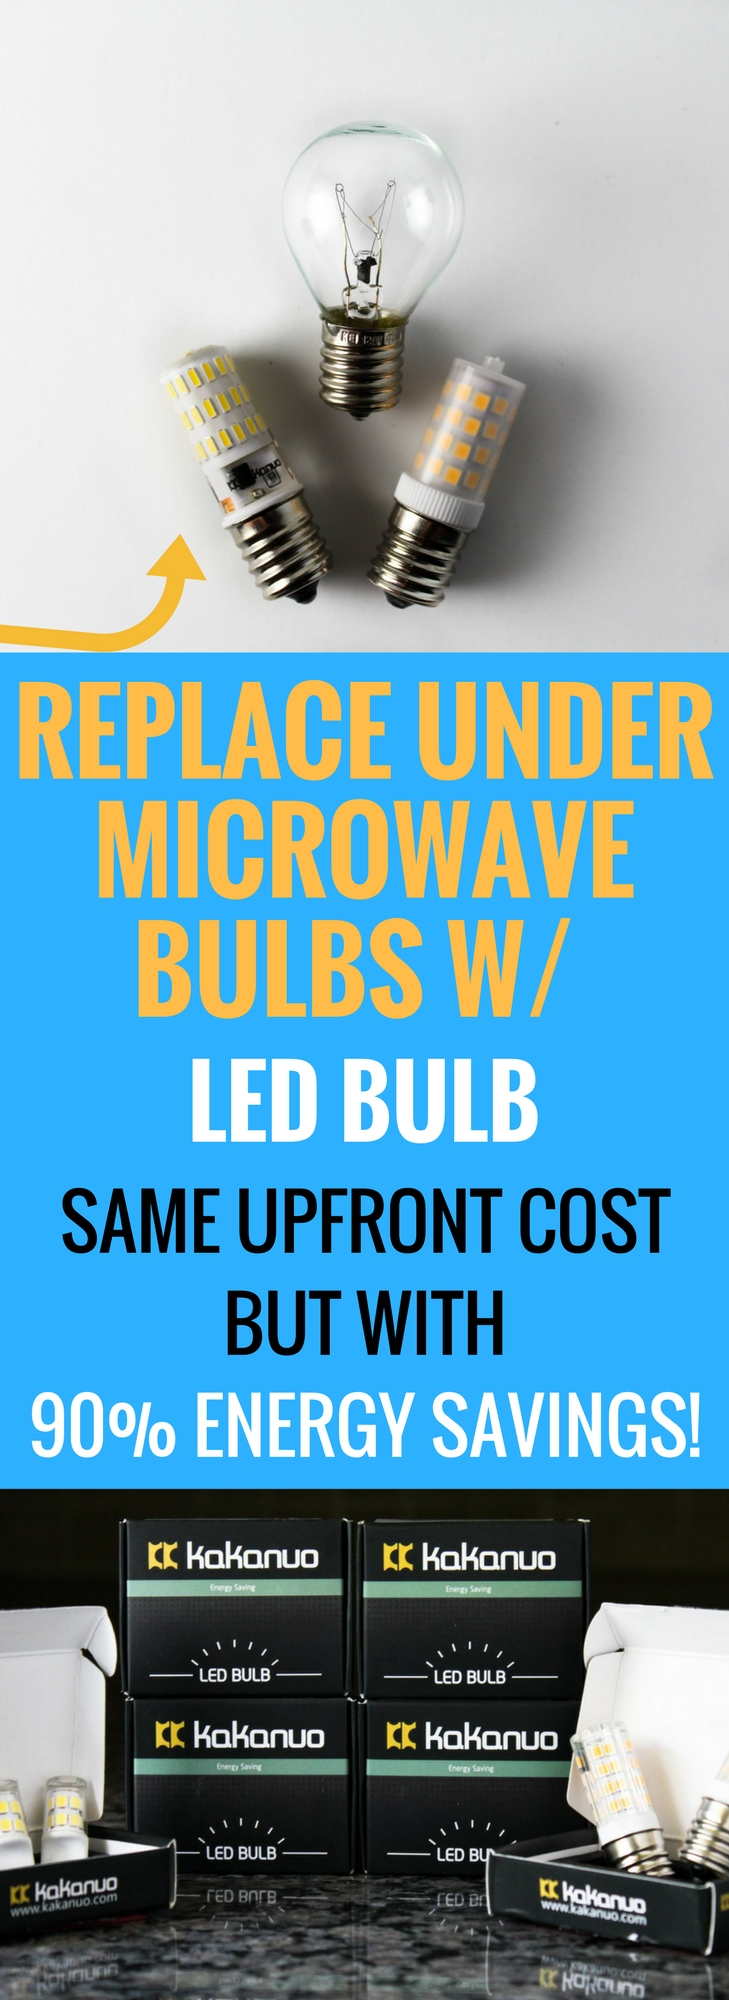 Compare The Price Of Regular Appliance Bulbs With Energy